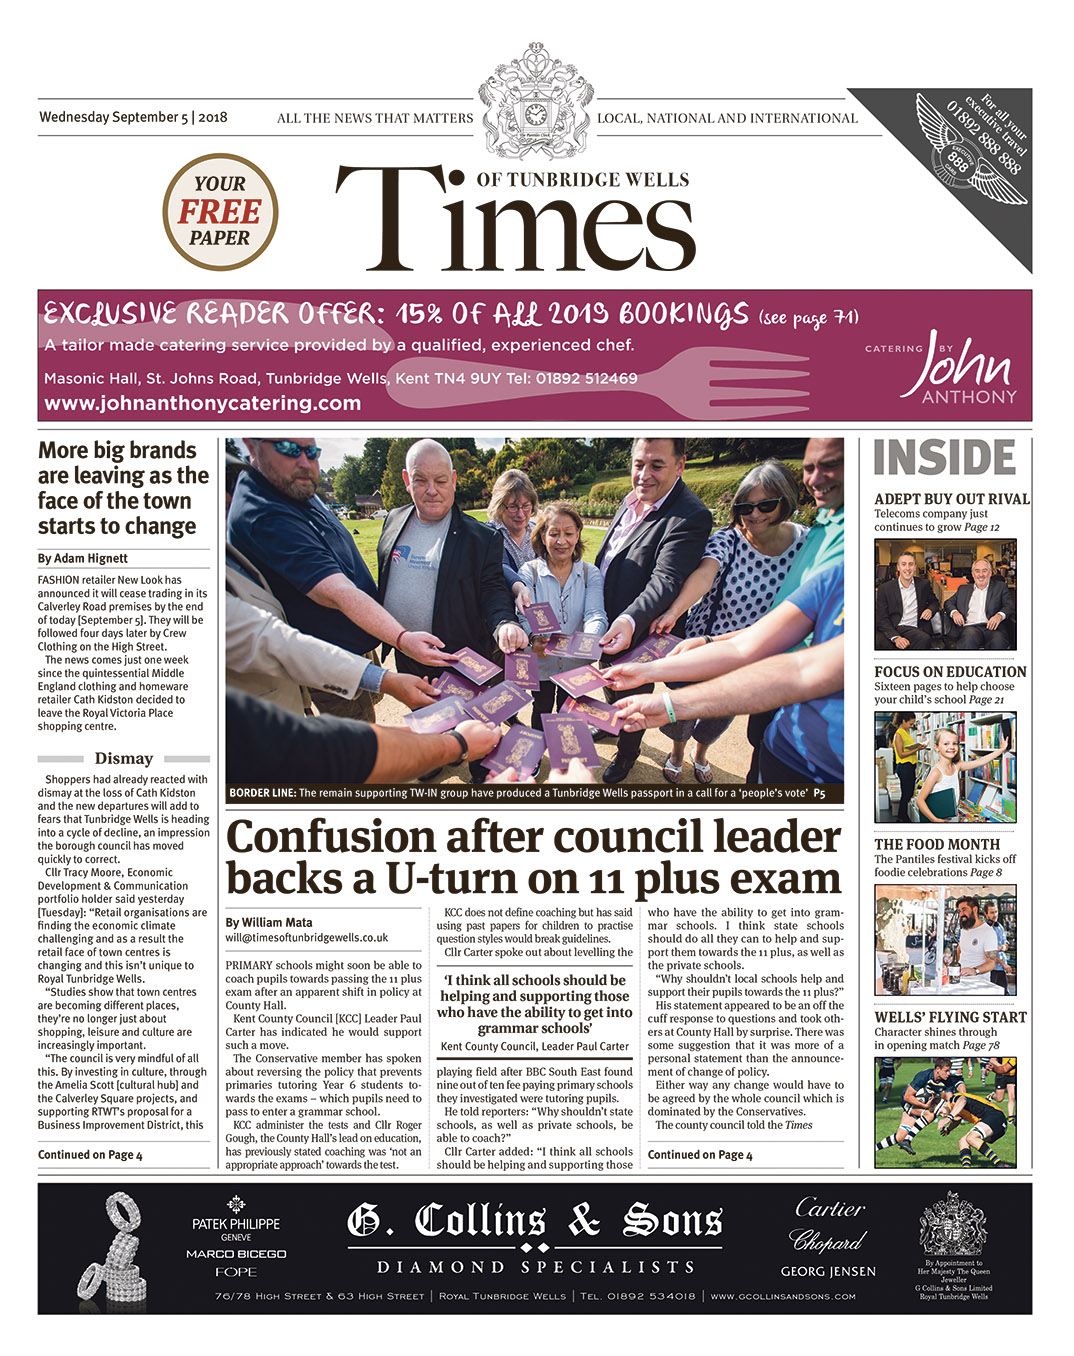 Read the Times of Tunbridge Wells 5th September 2018